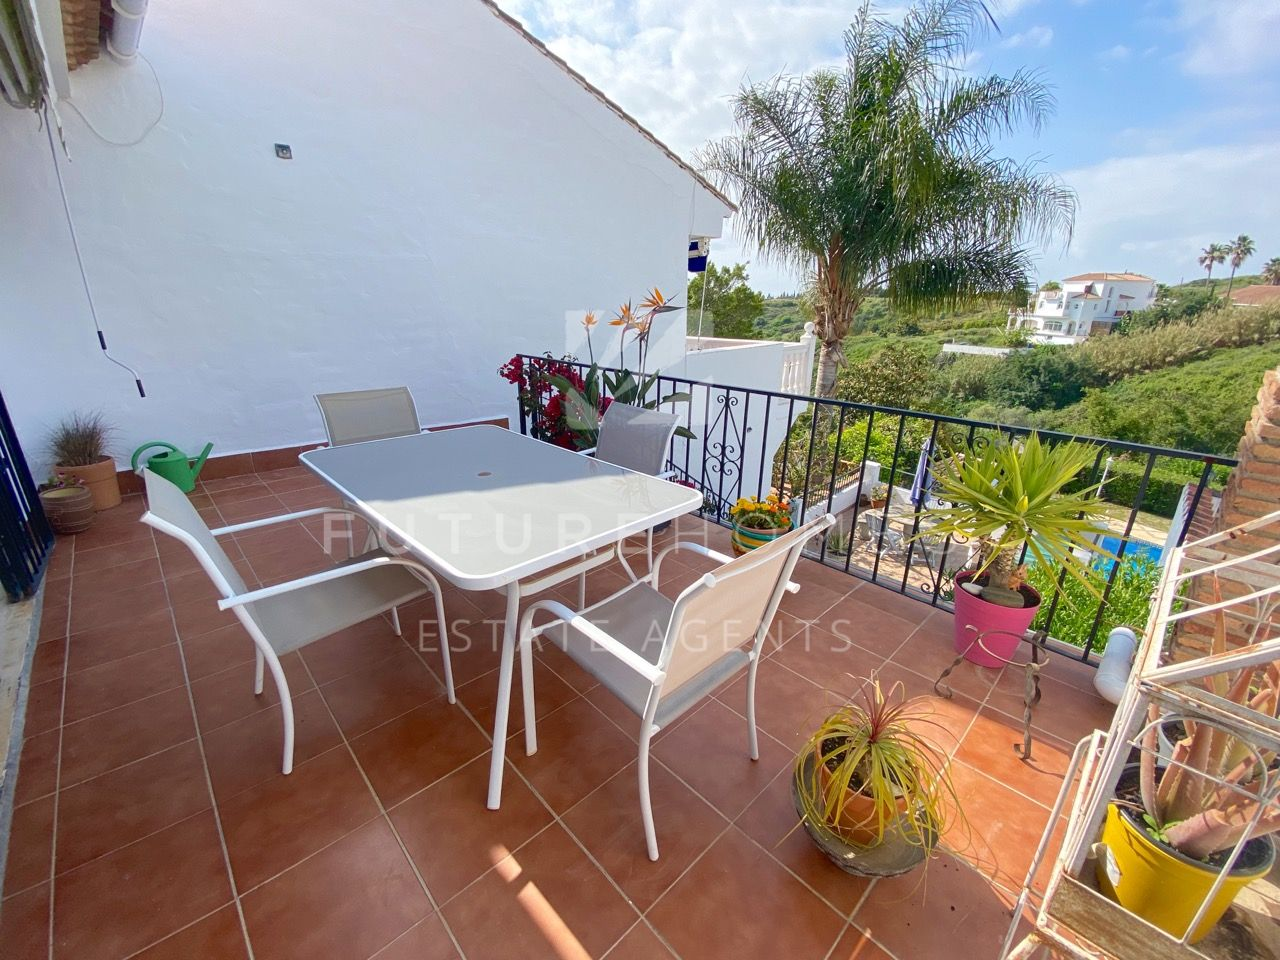 Well priced townhouse in quiet location yet only minutes from Estepona town centre